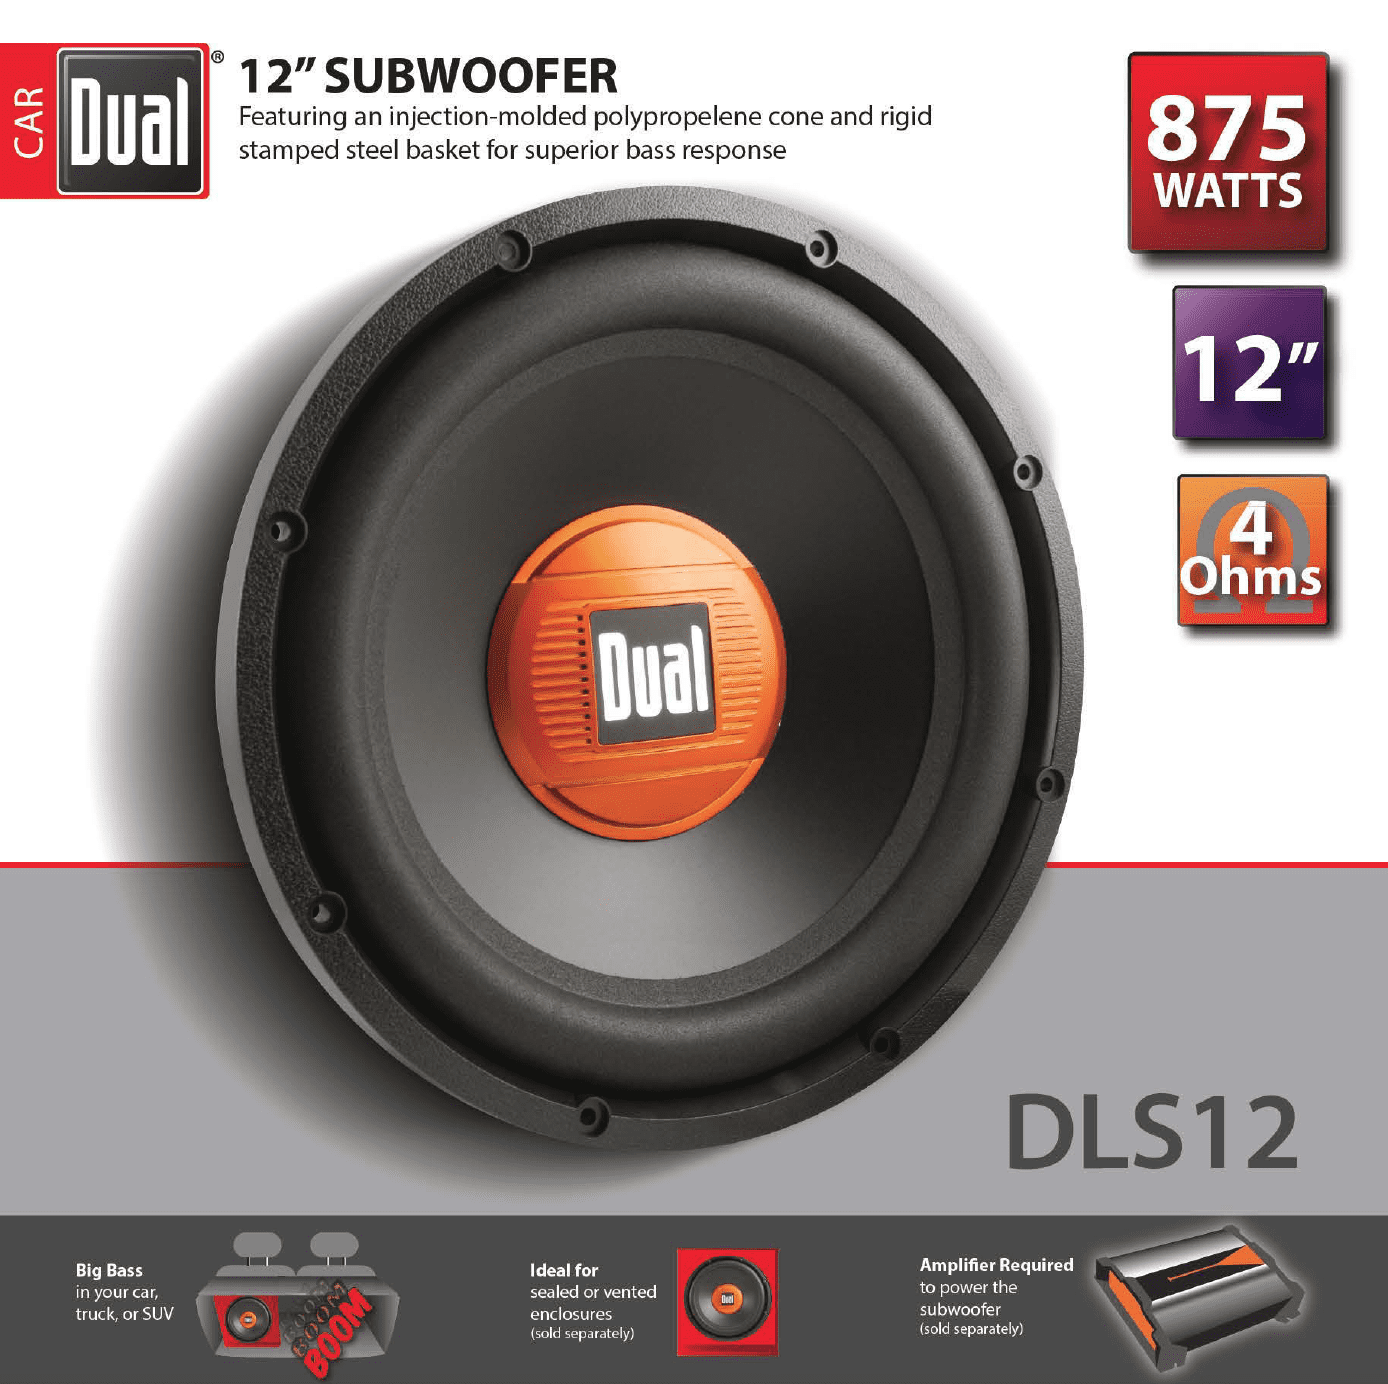 Dual Electronics Dls12 12 Inch High Performance Subwoofer With A 2 Wiring Diagram For Boss 4 Ohm Single Voice Coil And 875 Watts Of Peak Power